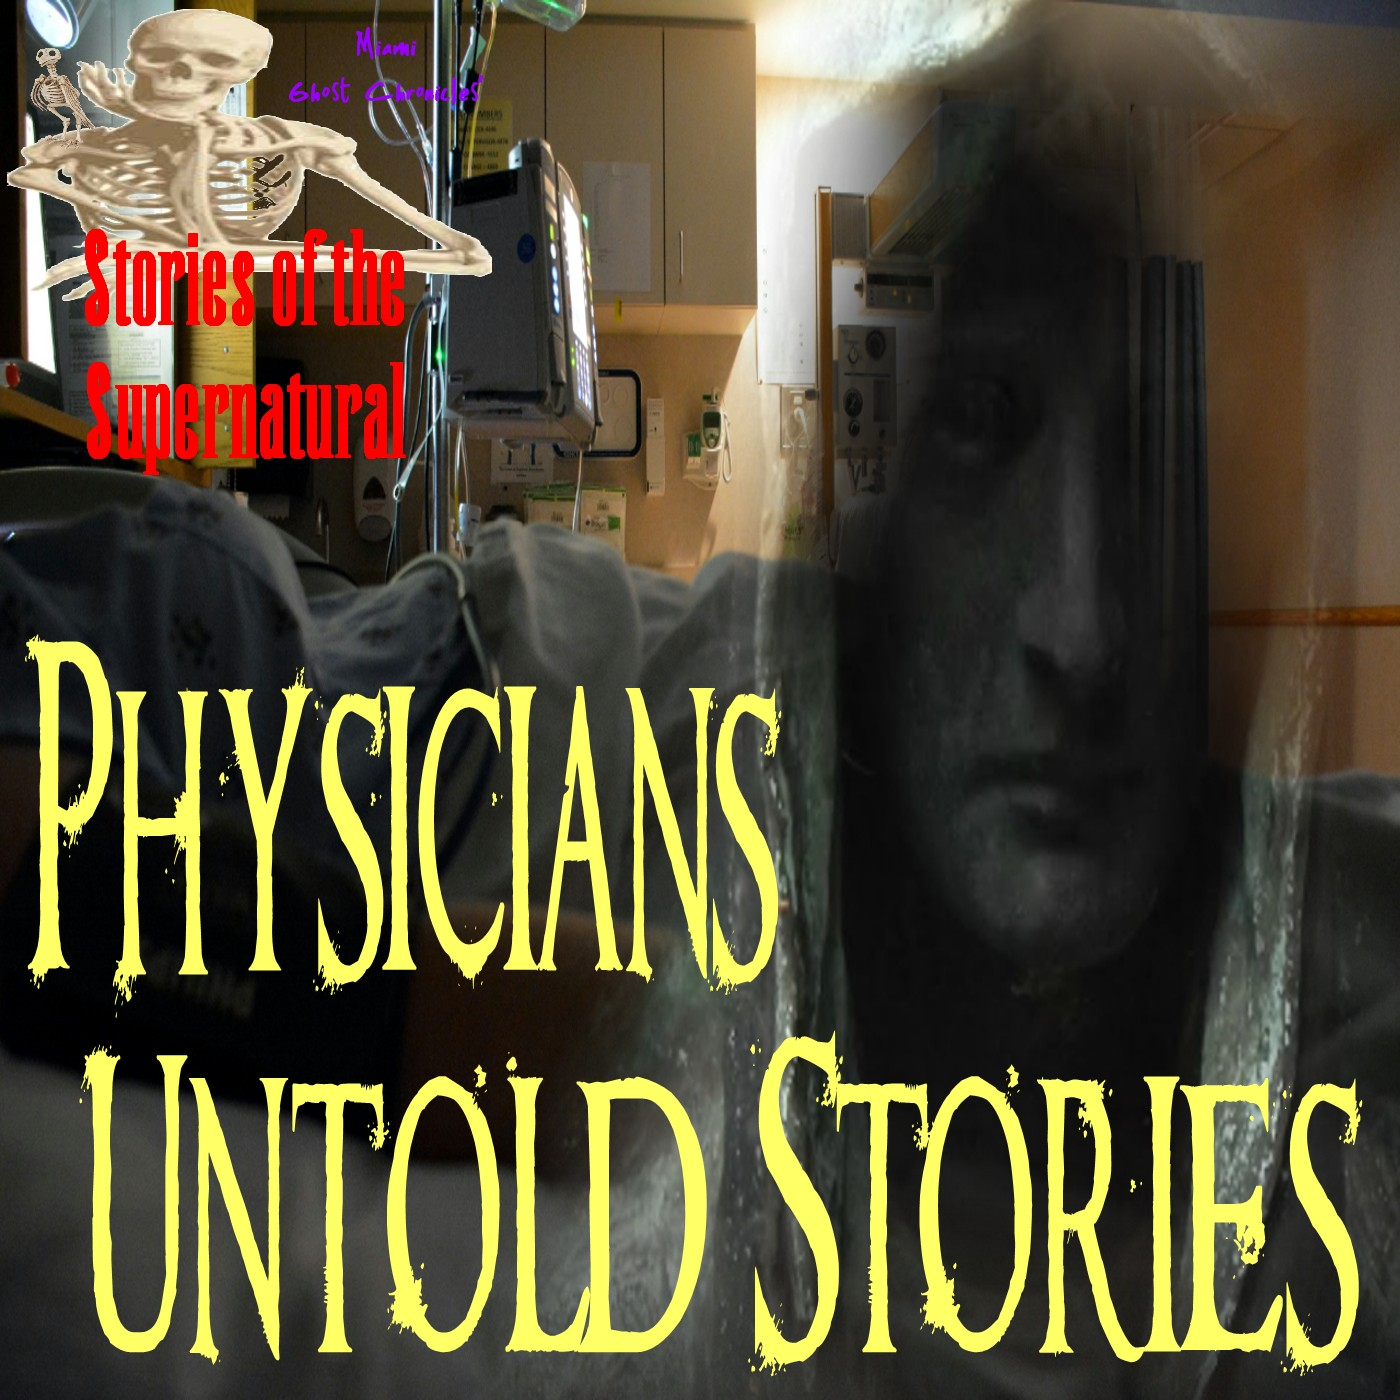 Physicians' Untold Stories   Interview with Dr. Scott Kolbaba   Podcast